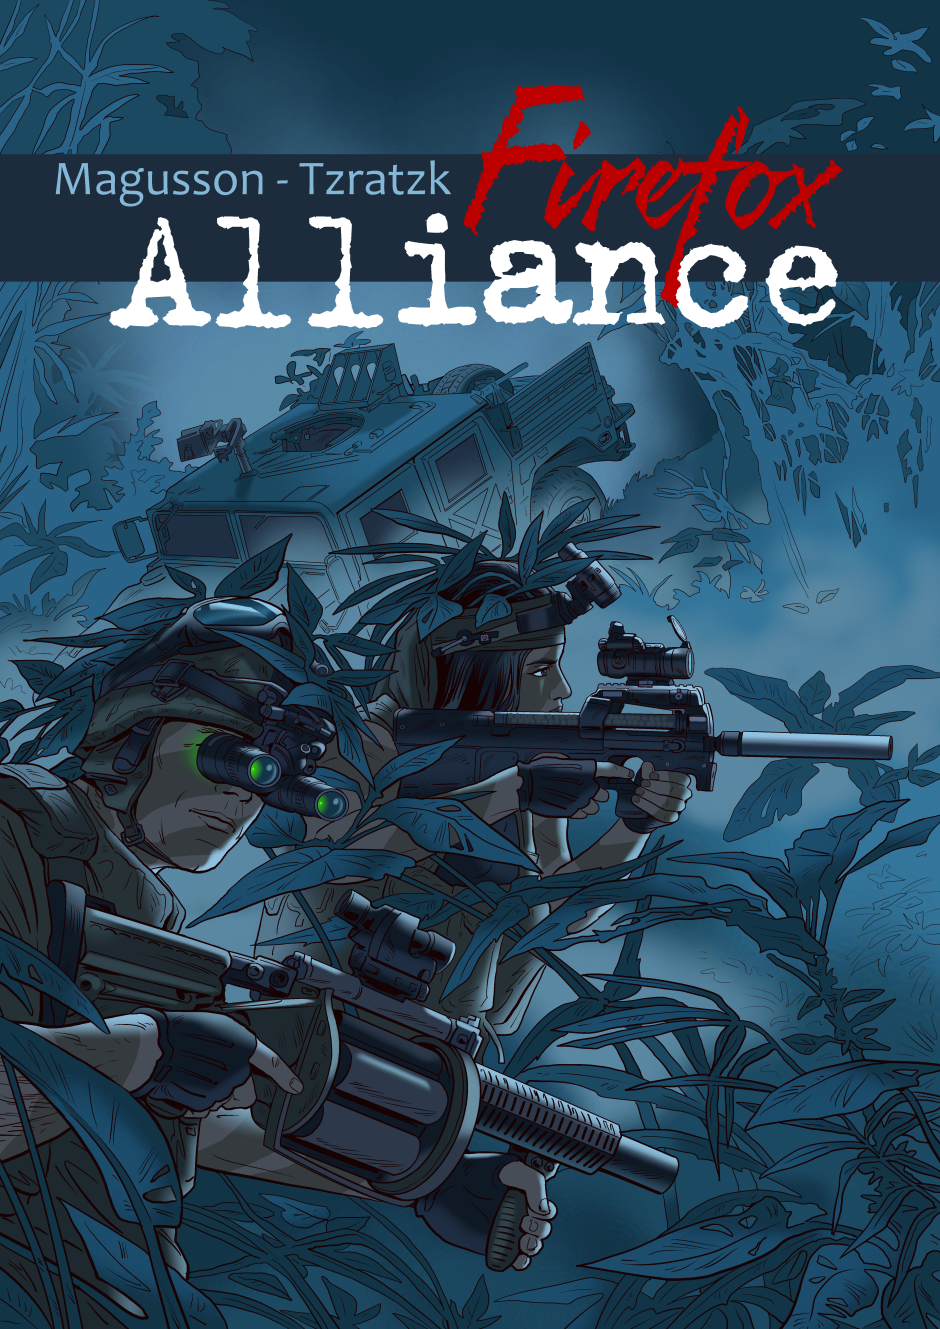 FireFox Alliance Cover